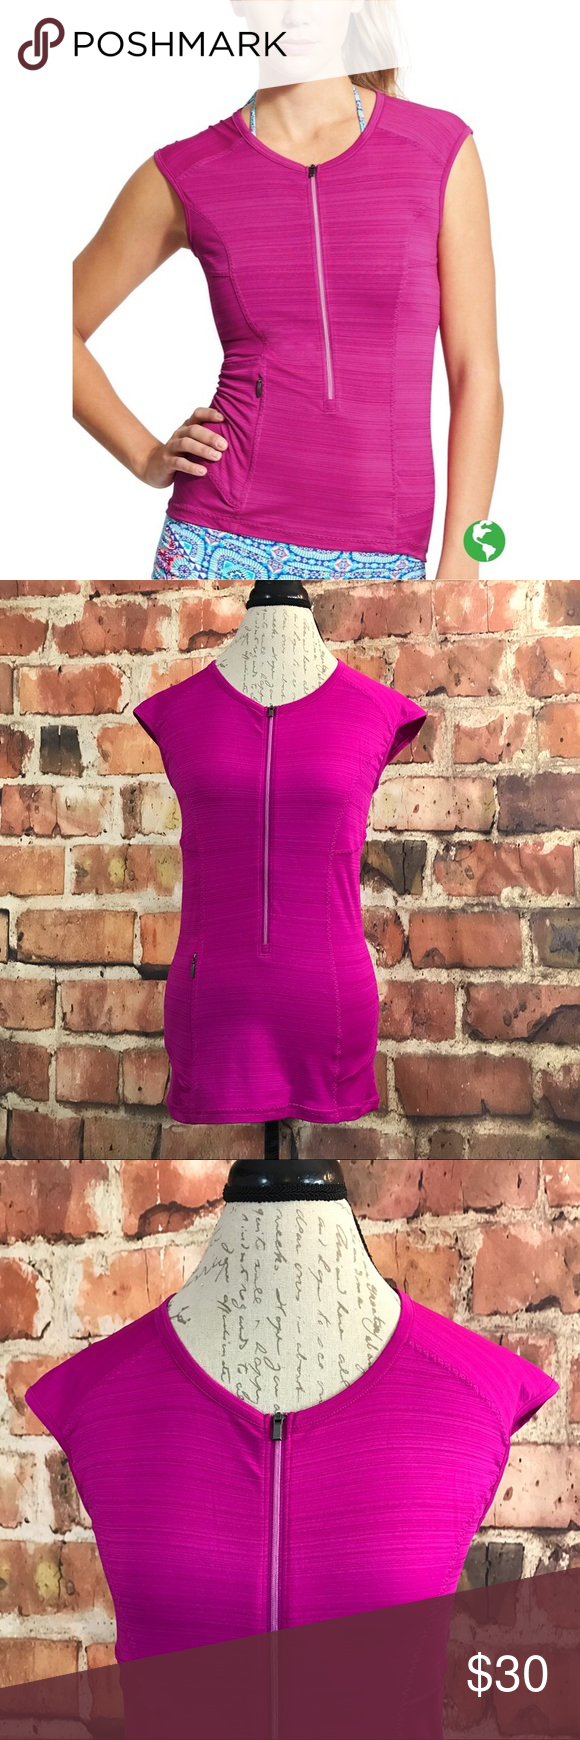 """Athleta Pacifica UPF Tank 3.0 Electric Fuschia M A semi fitted tank that is light & comfy! Features space Dye like detail in an Electric Fuschia color. Features a Zippered pocket and riches like detail on the back along with a Zippered front. Lightly worn once, in New like condition!   Additional Information:  Made in: Vietnam  Material: recycled Polyester/Spandex  Bust: 35""""  Waist: 32""""  Length: 26.5"""" from top center back hem to bottom hem Athleta Tops Tank Tops"""